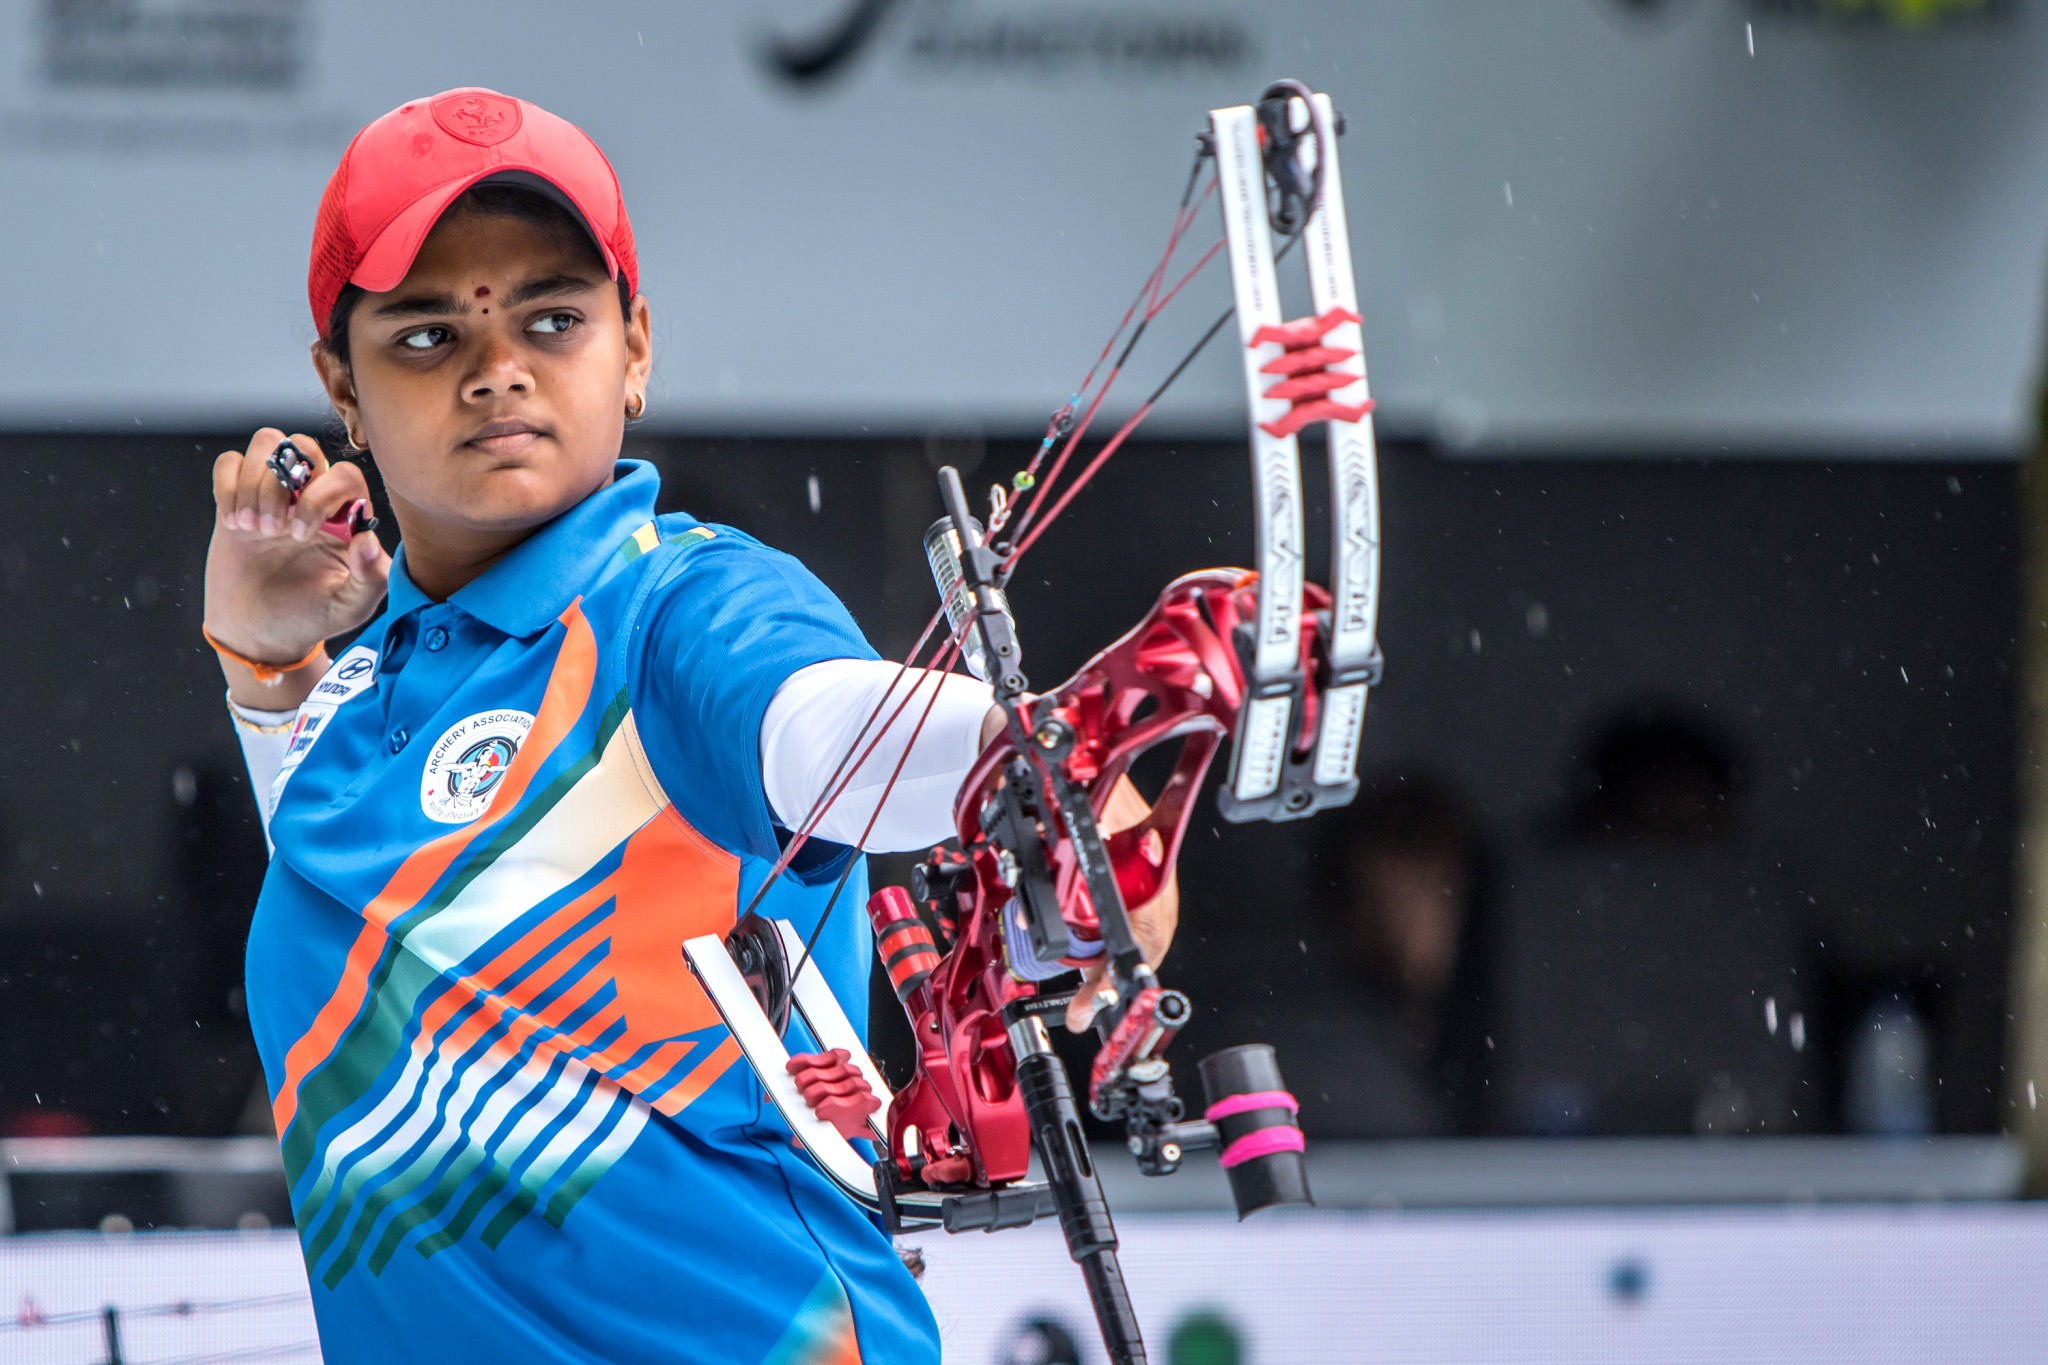 A Commonwealth Archery and Shooting Championships is due to take place in Chandigarh in January 2022 six months before Birmingham 2022 with medals of the two events added together afterwards ©Getty Images